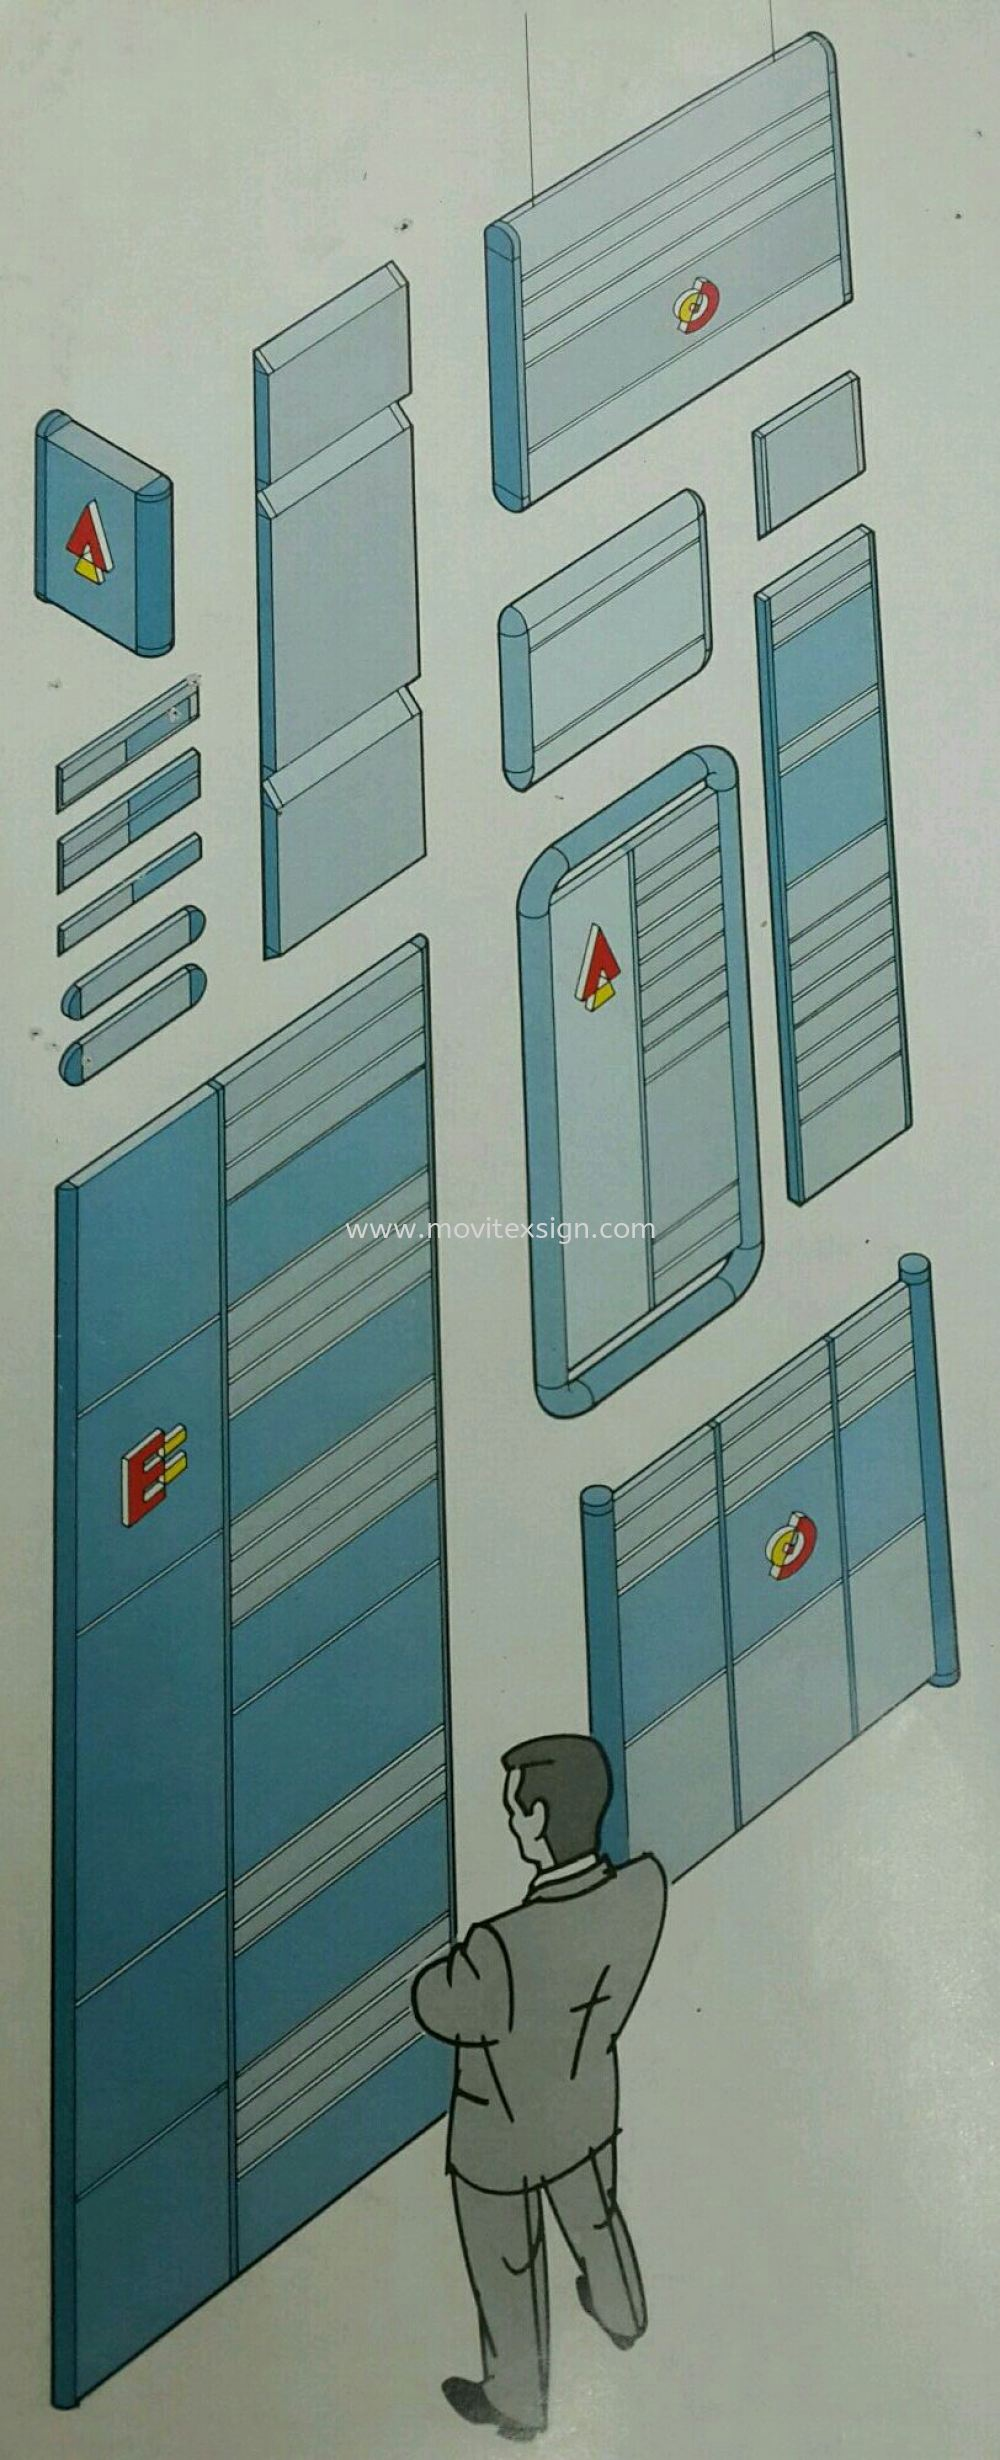 Aluminium profile systems for building directory or door sign  Material Johor Bahru (JB), Johor, Malaysia. Design, Supplier, Manufacturers, Suppliers | M-Movitexsign Advertising Art & Print Sdn Bhd